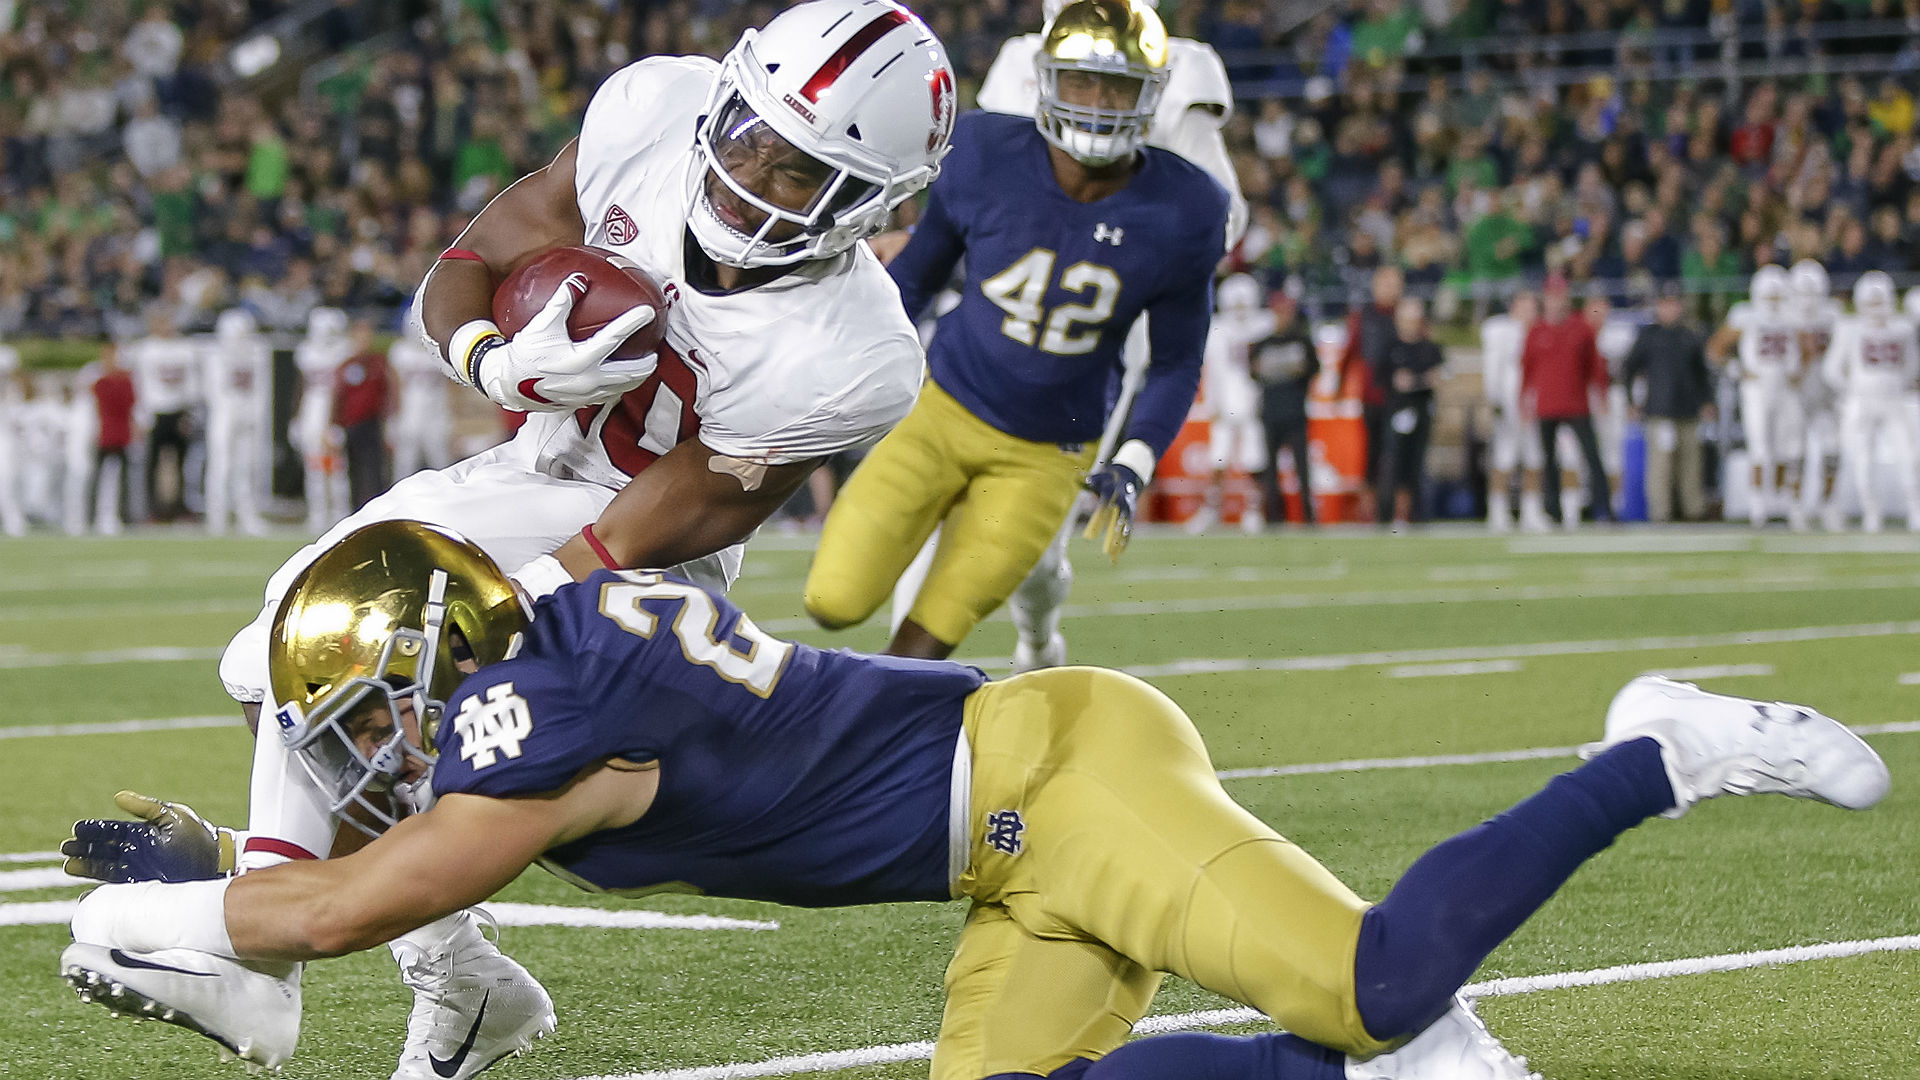 Three takeaways from No. 8 Notre Dame's big win over No. 7 ...